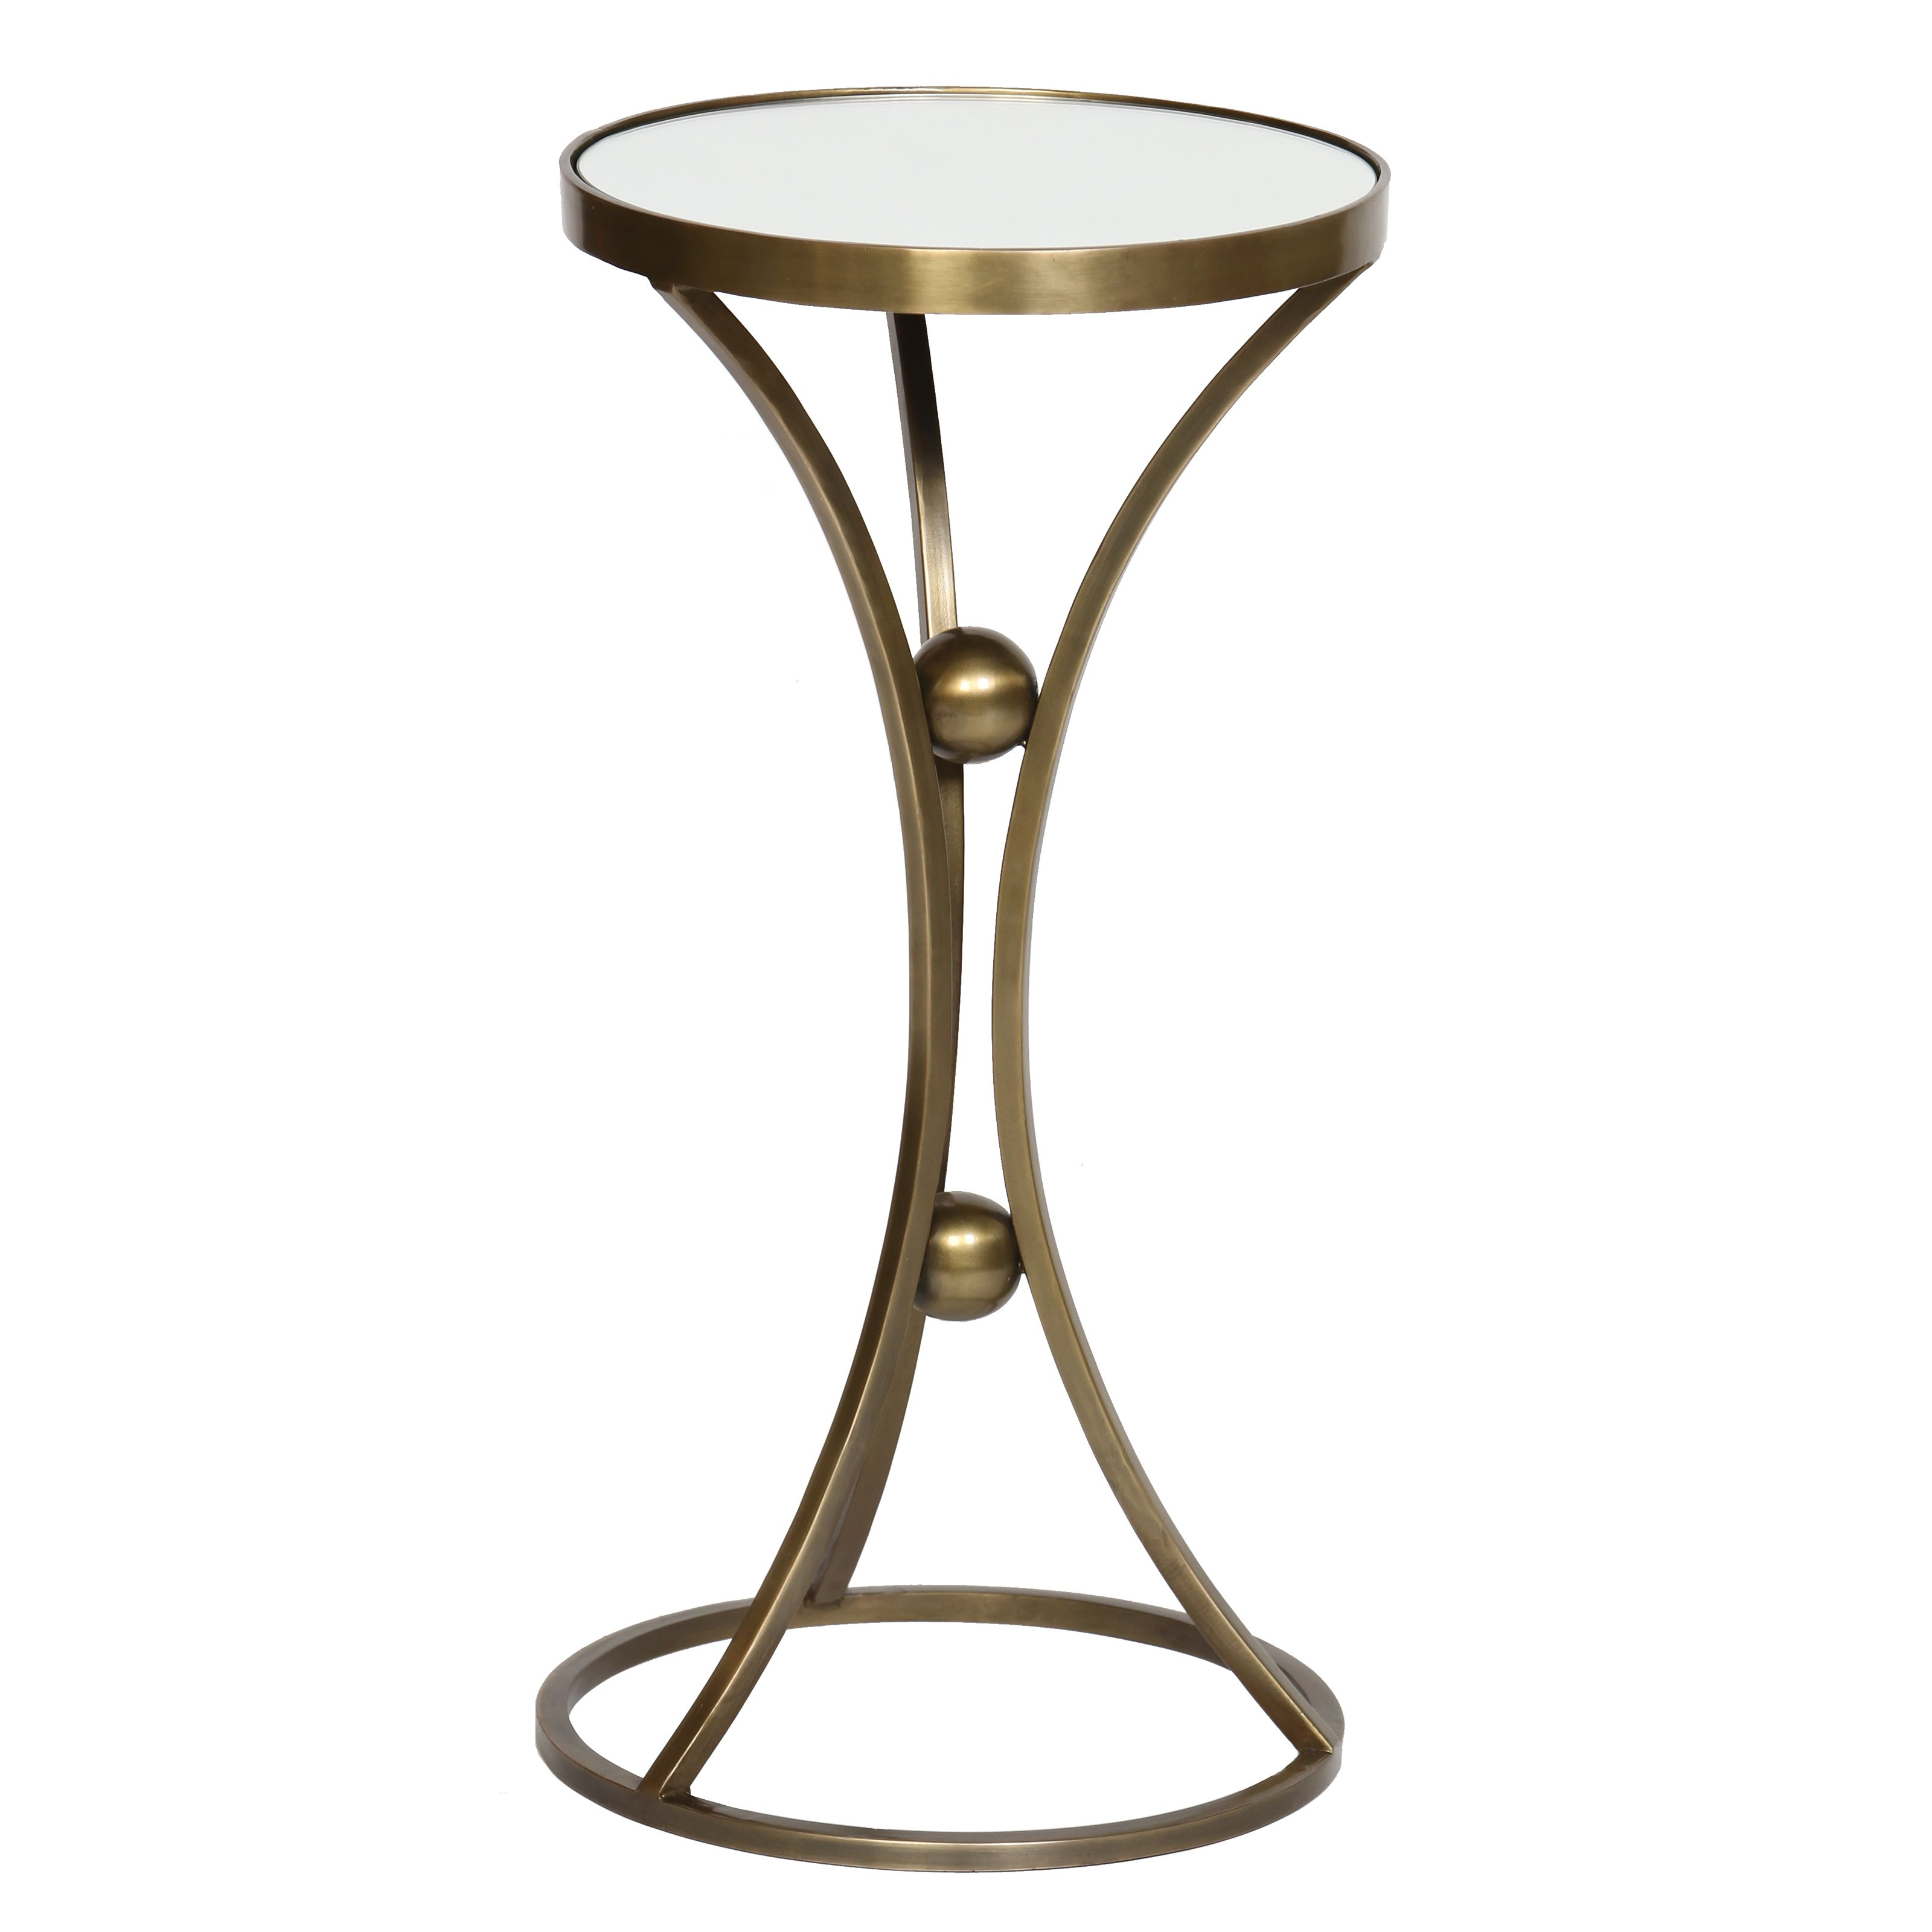 prima legged accent table antique brass transitional style end tables small rectangular board game coffee wood pedestal base cigar humidor cabinet play farm dining room sets ikea